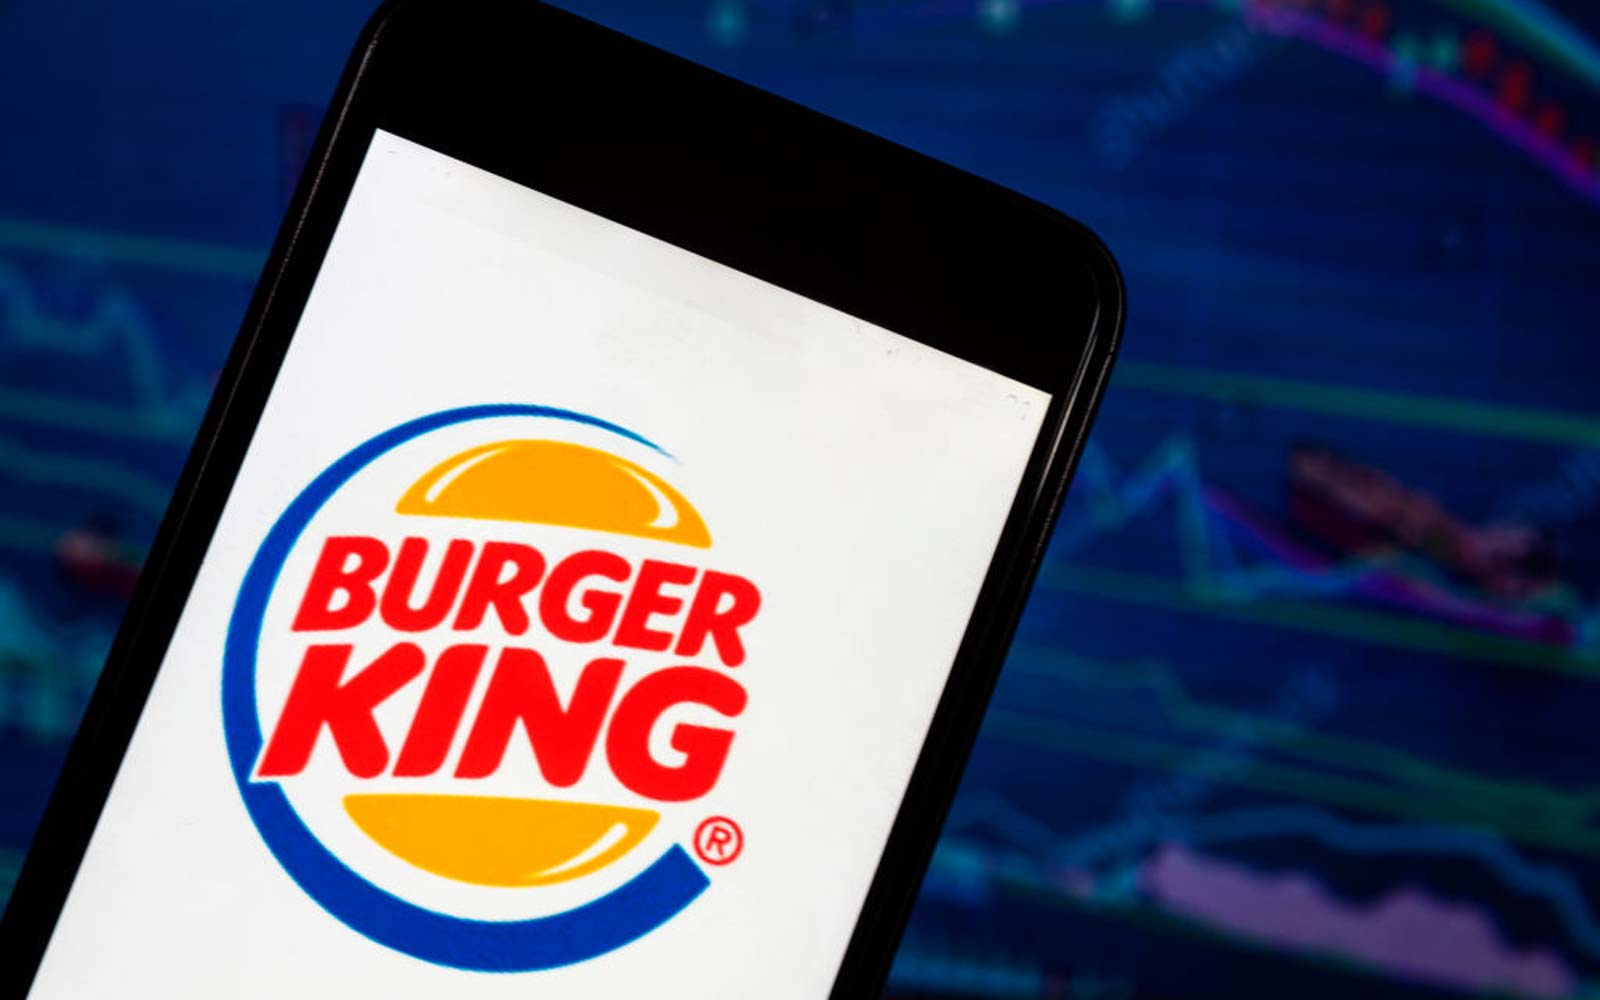 The Burger King application seen displayed on a smart phone